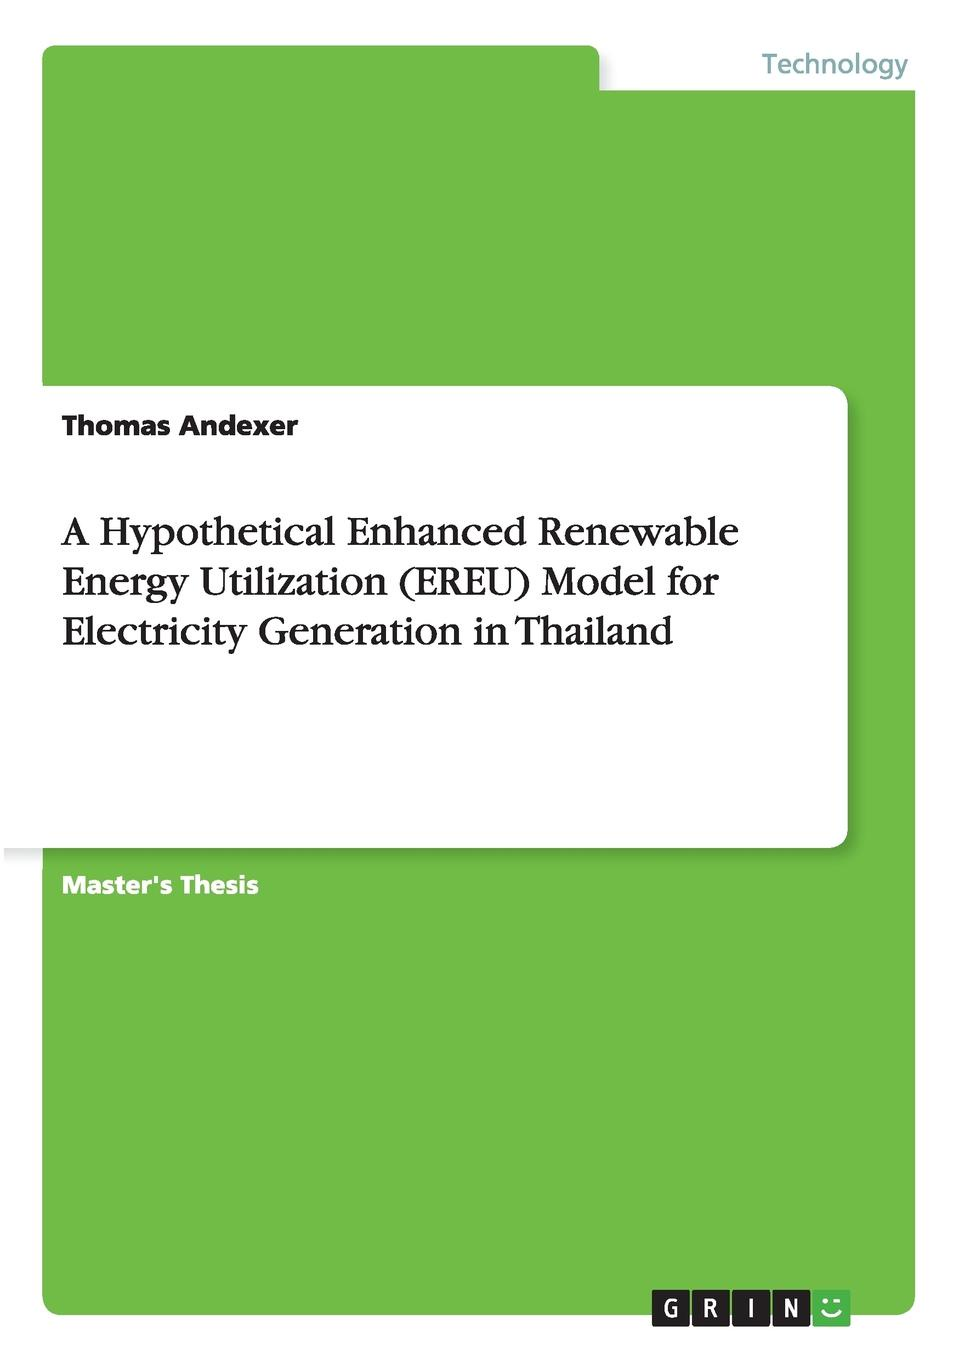 Thomas Andexer A Hypothetical Enhanced Renewable Energy Utilization (EREU) Model for Electricity Generation in Thailand ножка для вертящегося стула thailand such as